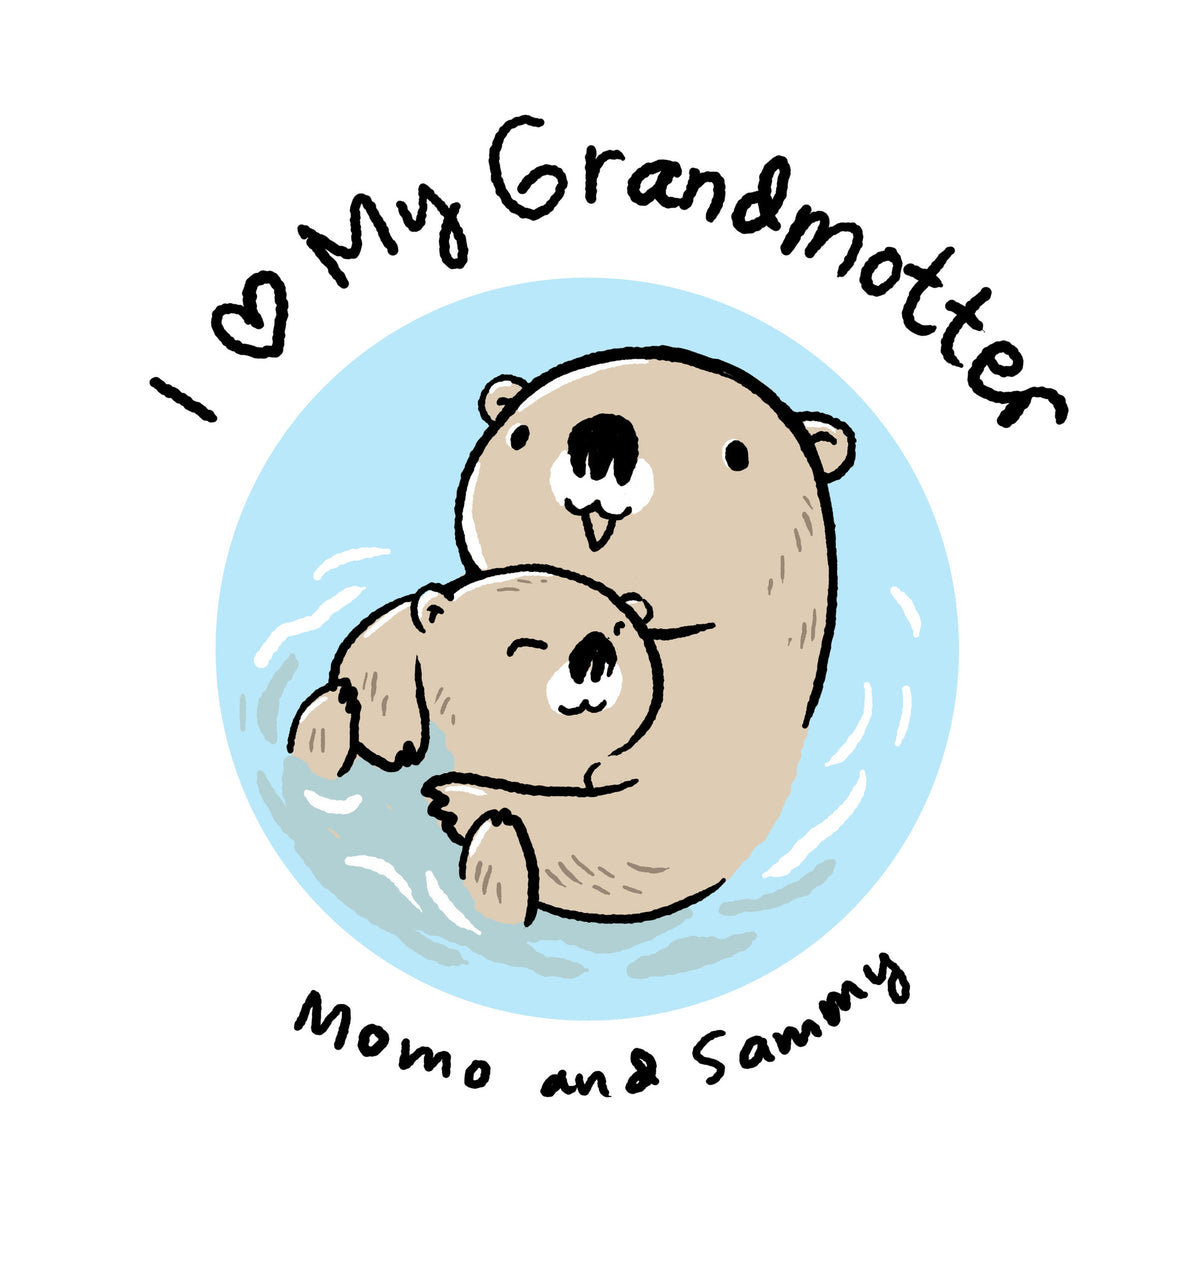 I heart My Grandmotter image